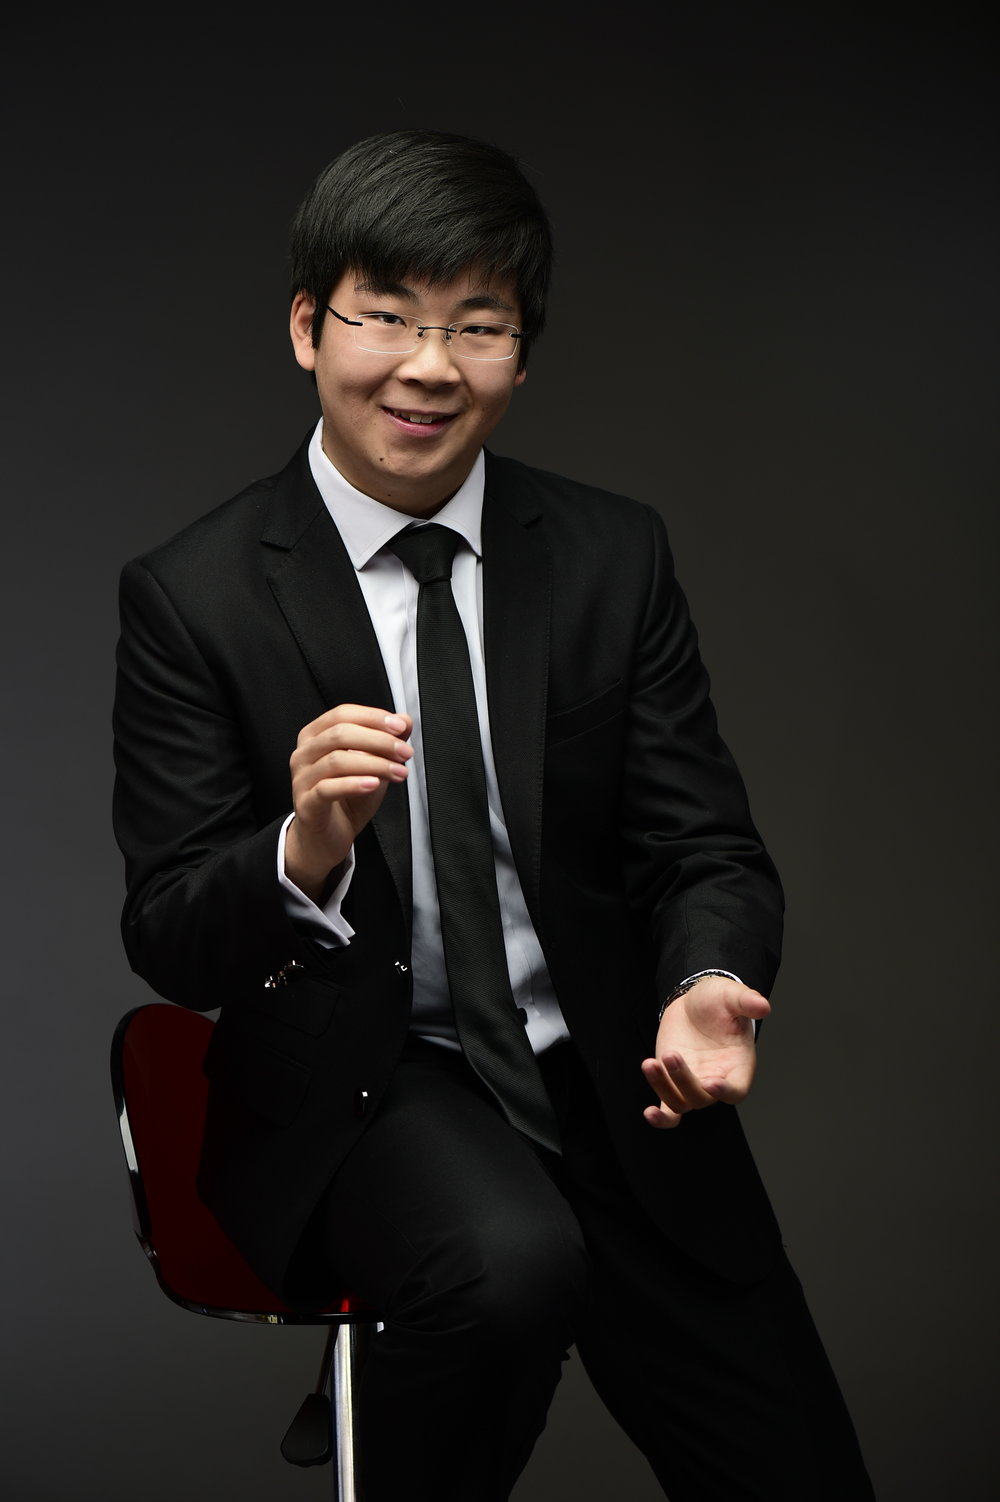 Scott Zhou - The Mentalist- Intelligent, Mysterious, ElegantUnlike the other performers, Scott's main focus is on mind-reading, and influence. He is able to use NLP and psychology to create amazing mind-reading demonstrations.Performance experience: 8 years